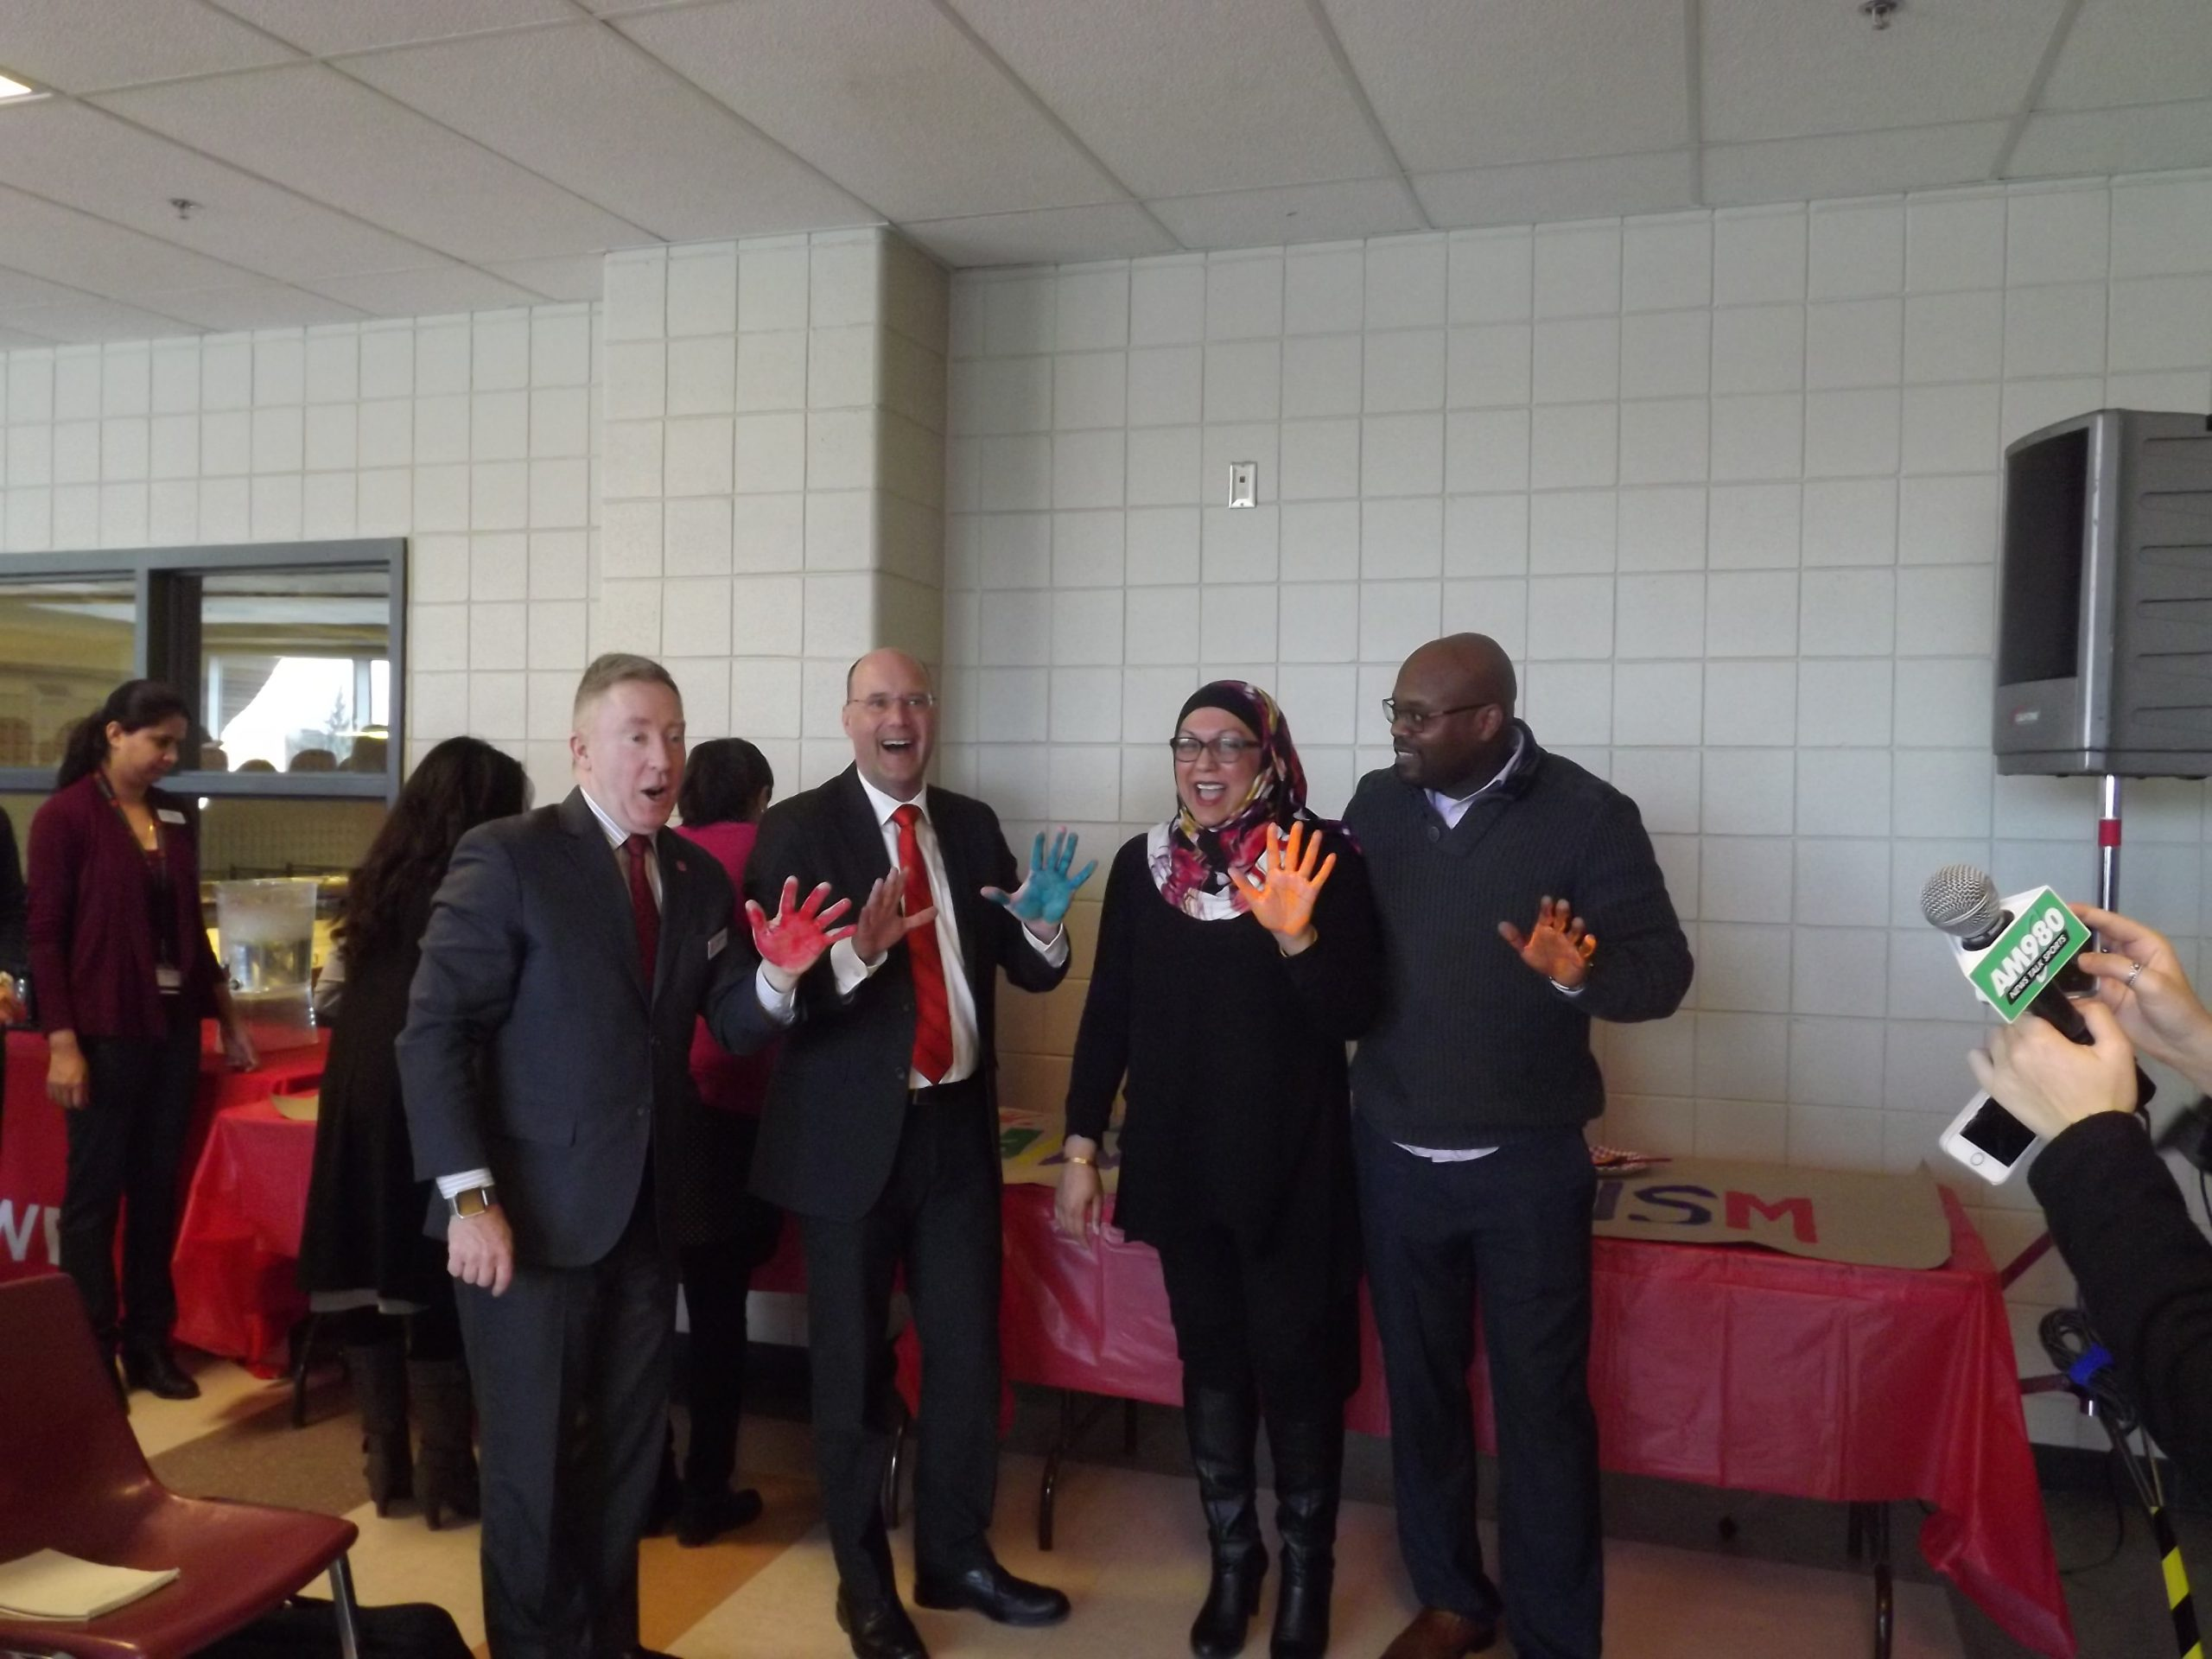 Raising hands against racism at Fanshawe College